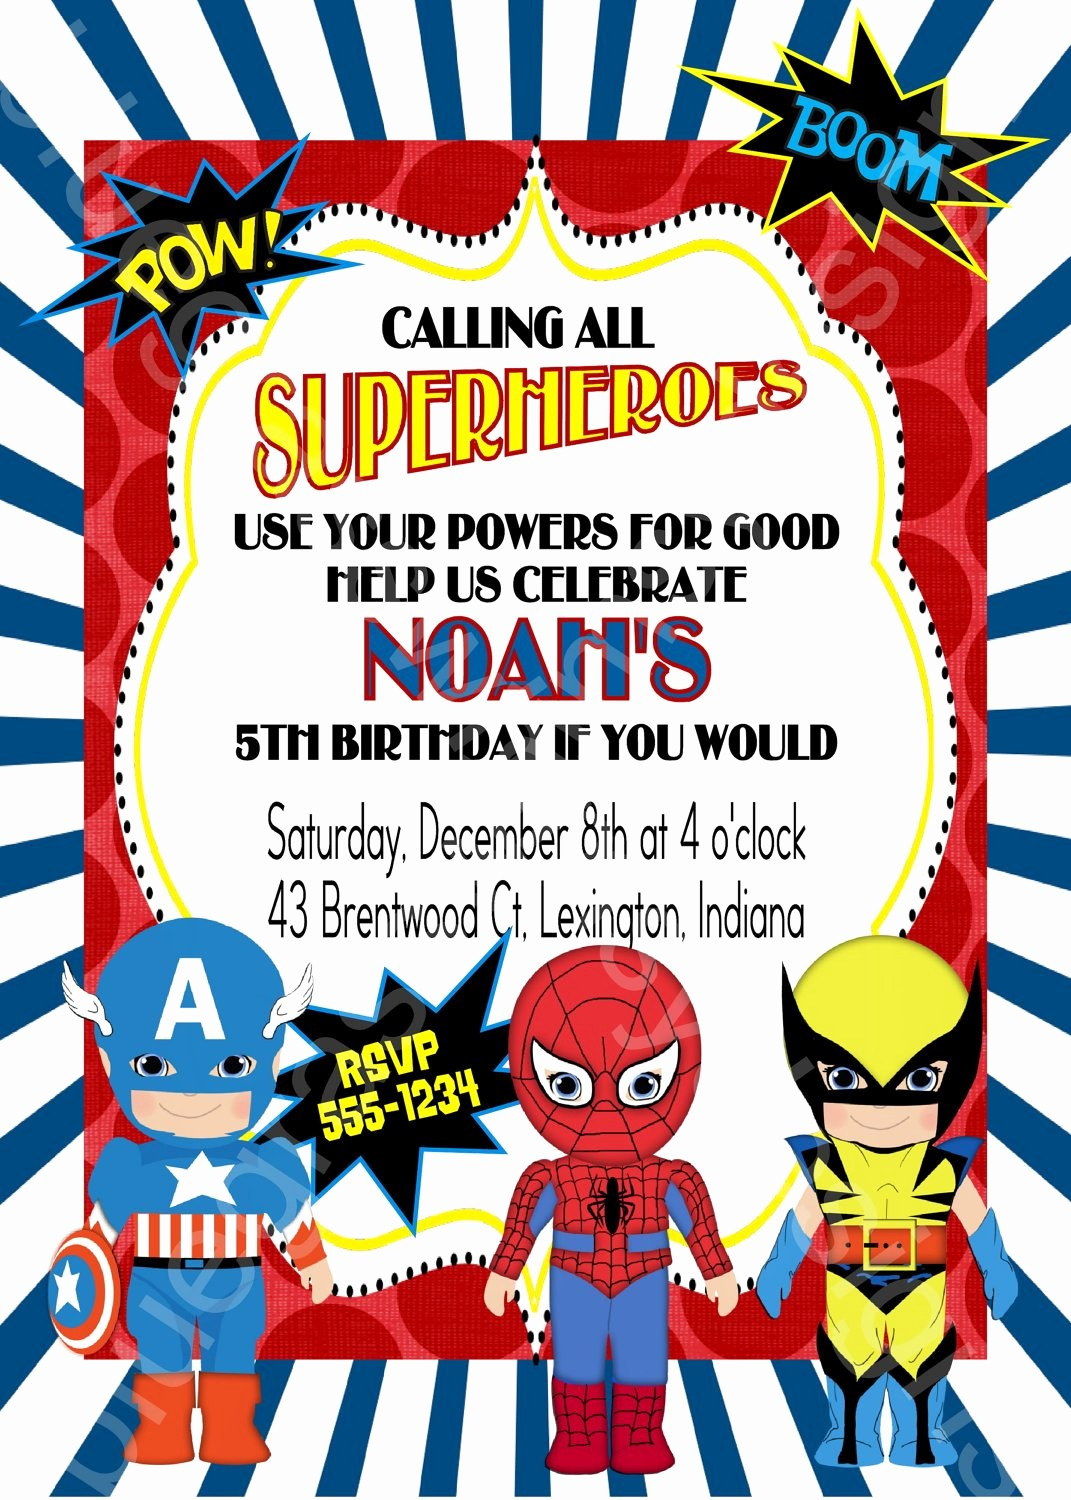 013 Superhero Invitation Template Free Ideas Awesome Calling All with regard to measurements 1071 X 1500